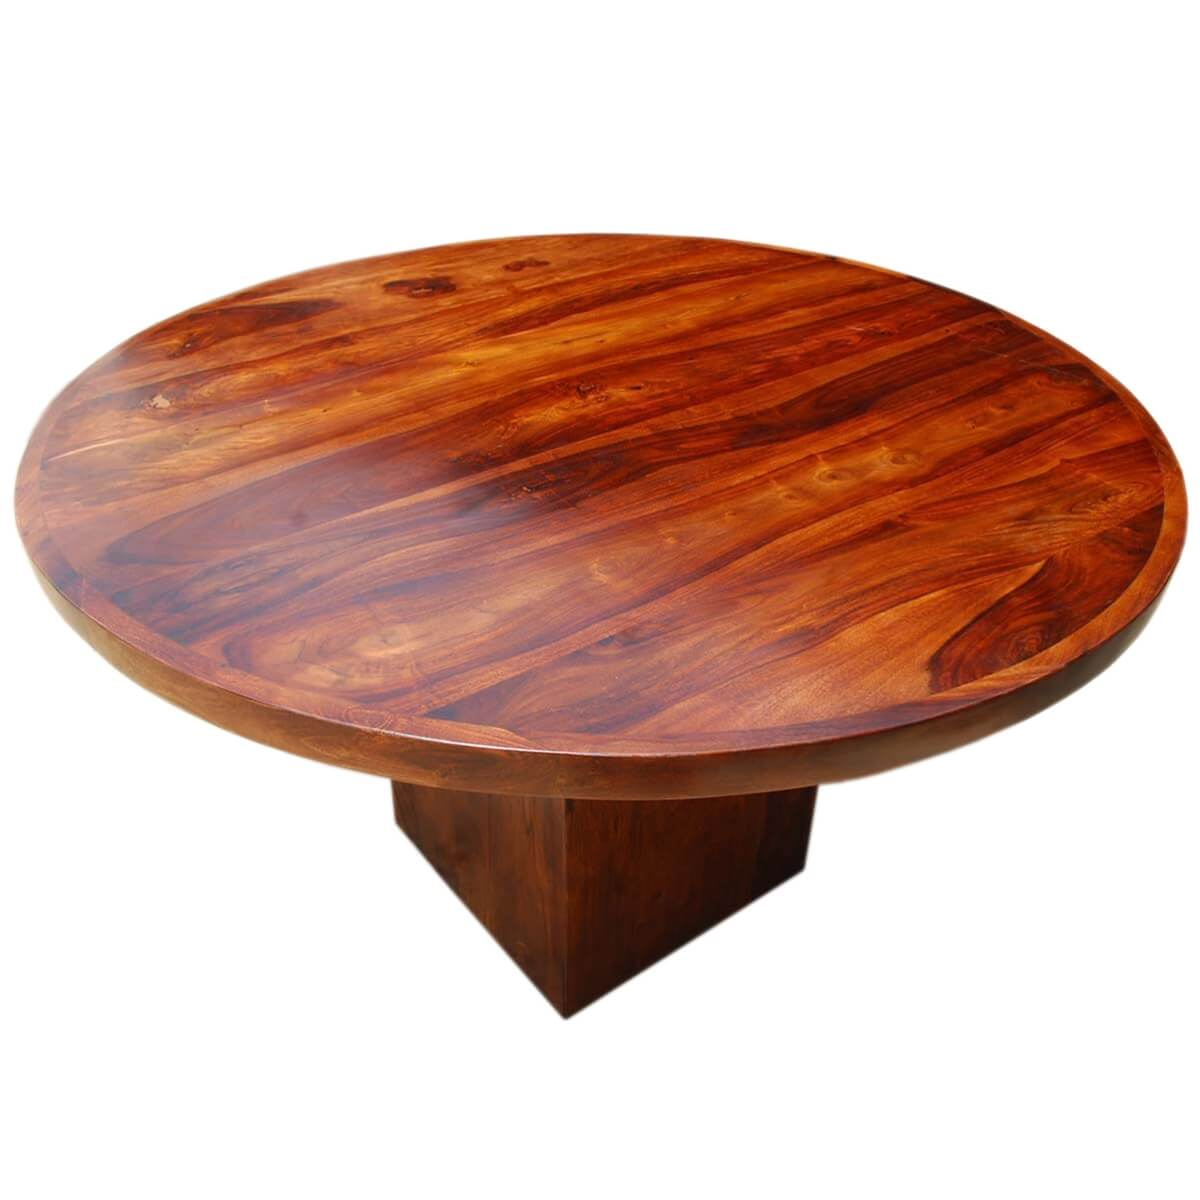 contemporary solid wood rustic round dining table w square pedestal